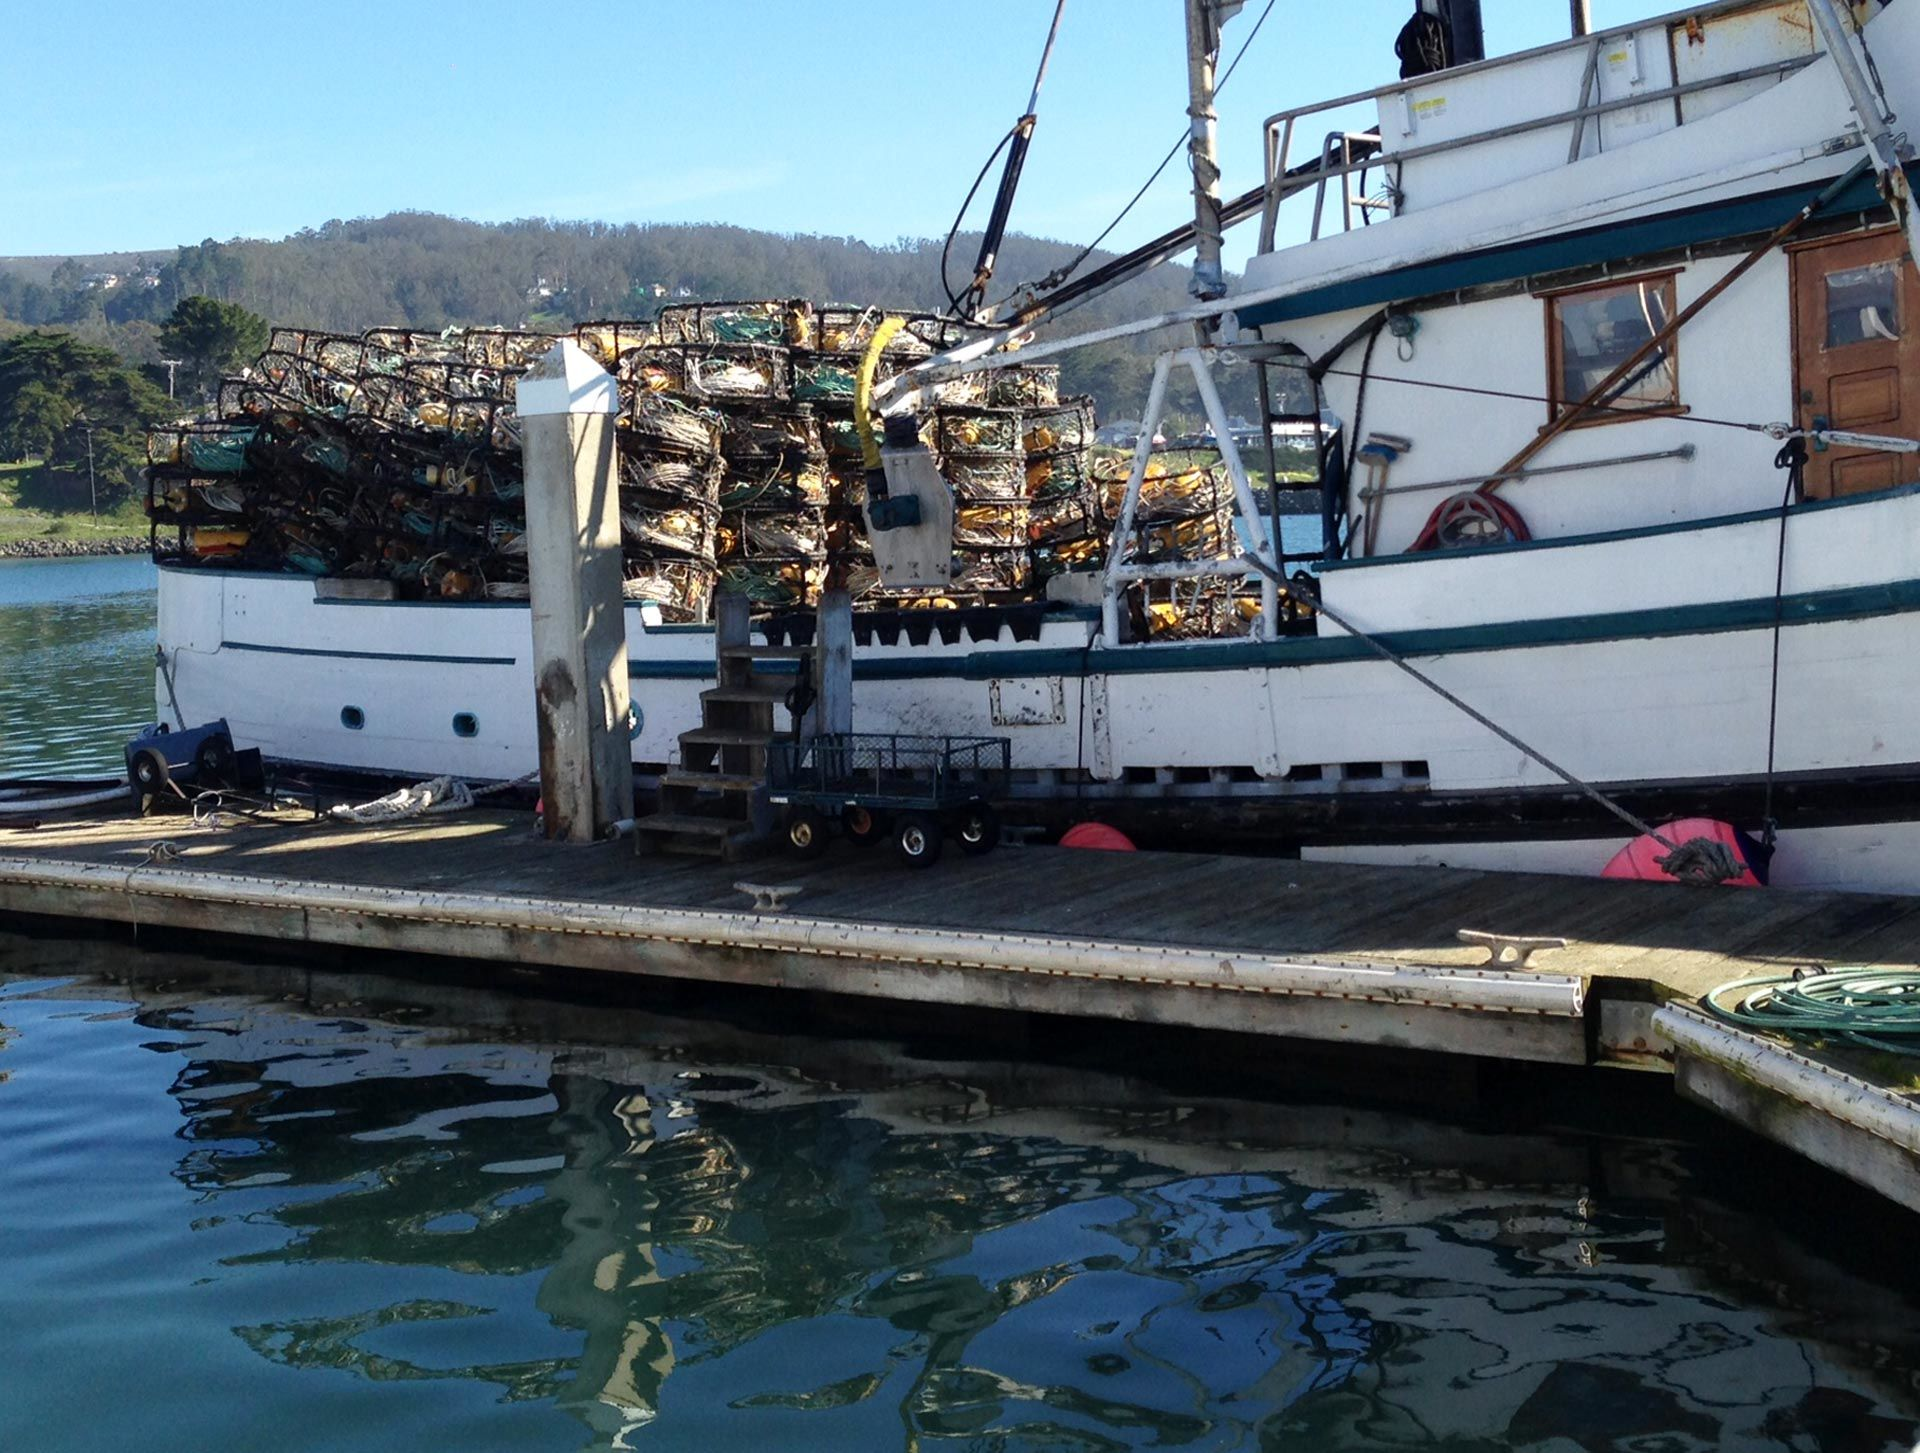 Crab pots sit unused on a fishing boat in Half Moon Bay harbor. Adia White/KQED